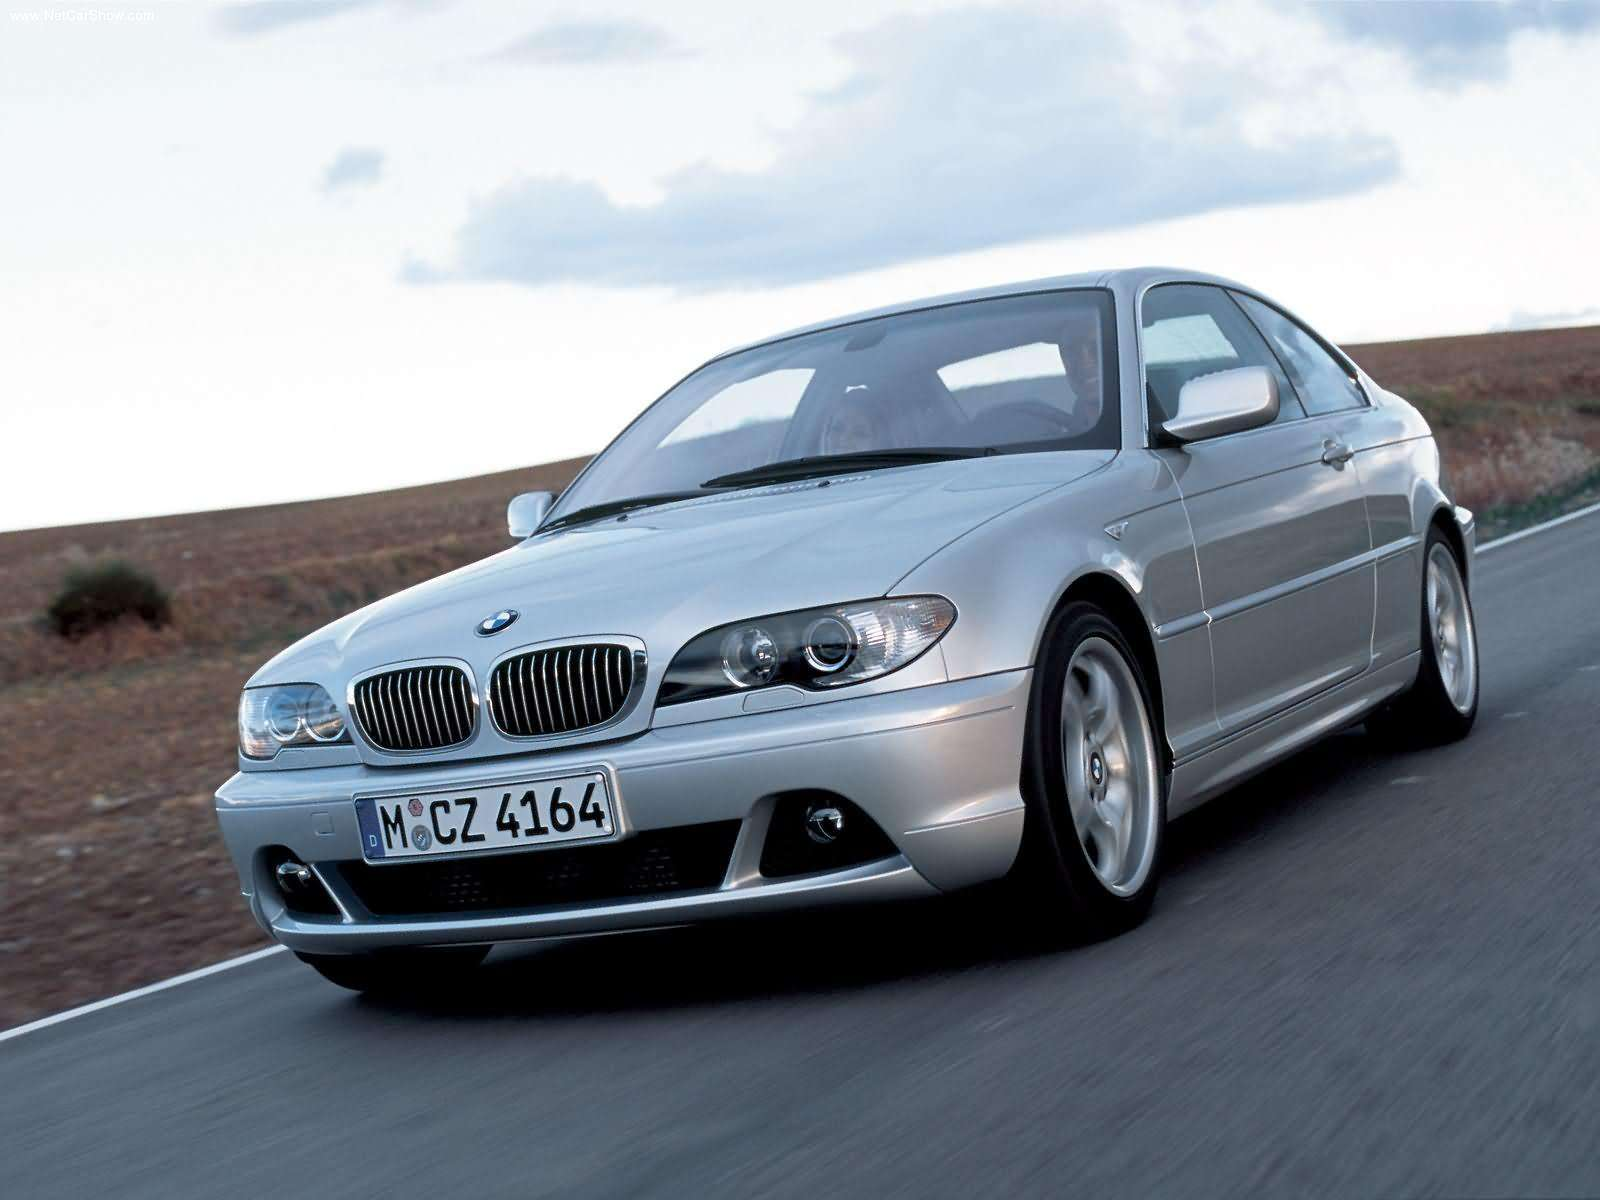 BMW 3 series (facelift) Coupe 2002